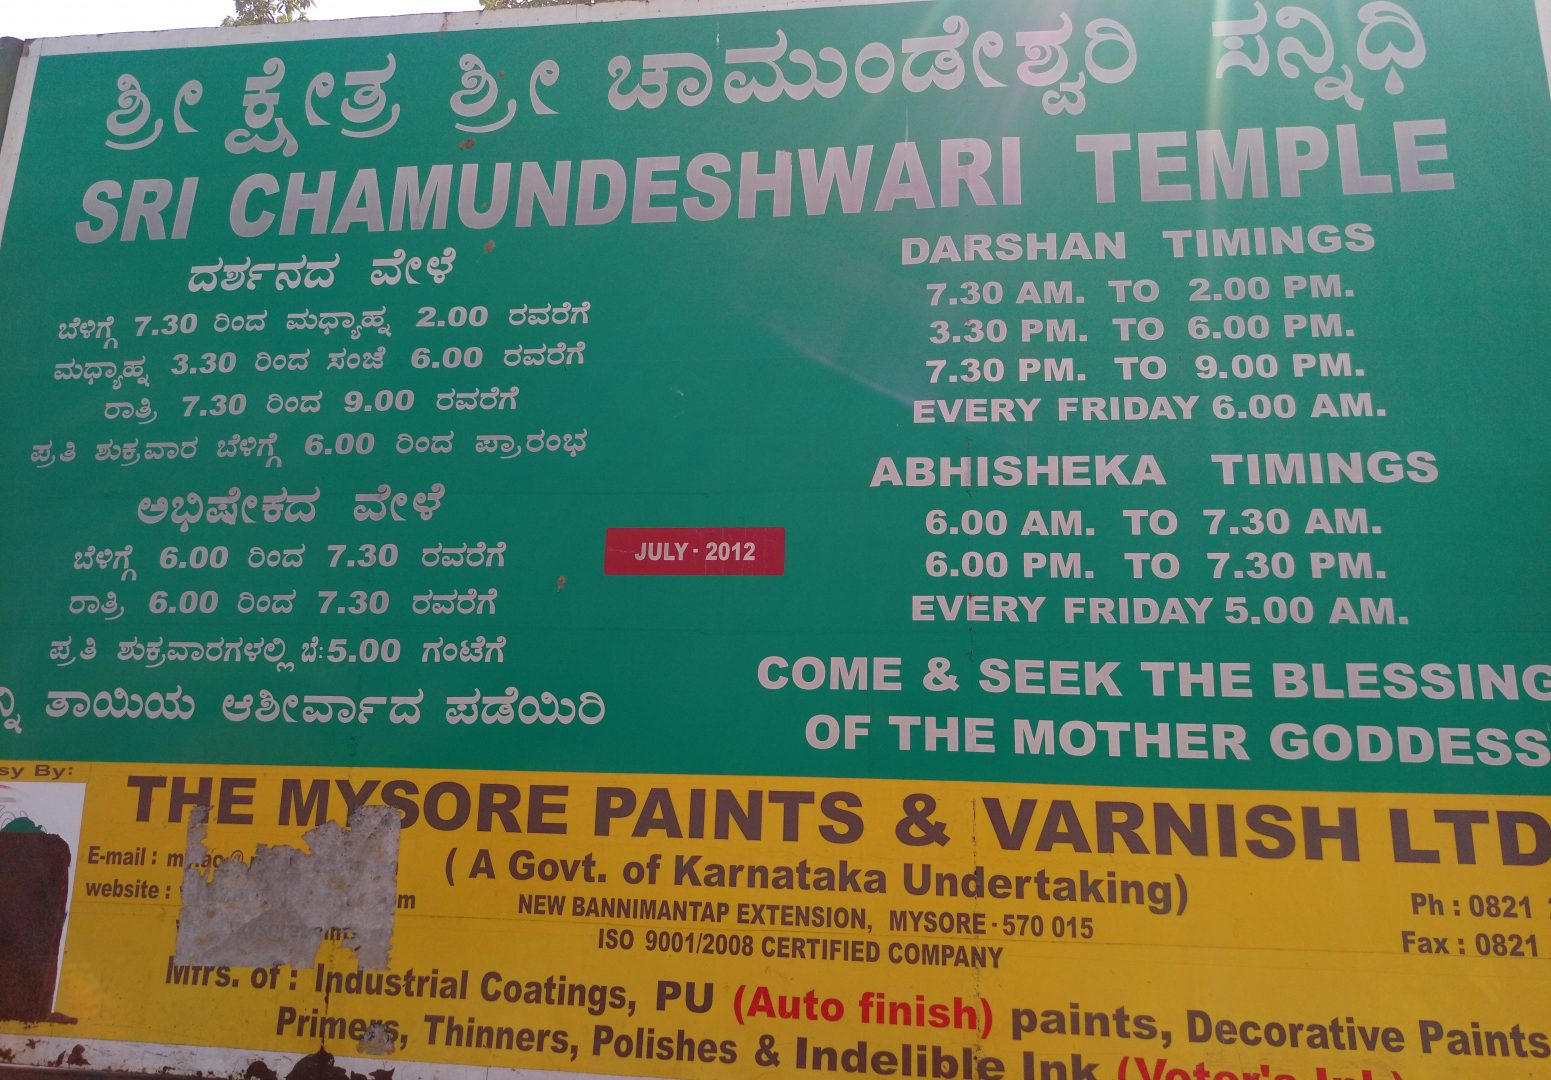 Chamundeshwari temple timings